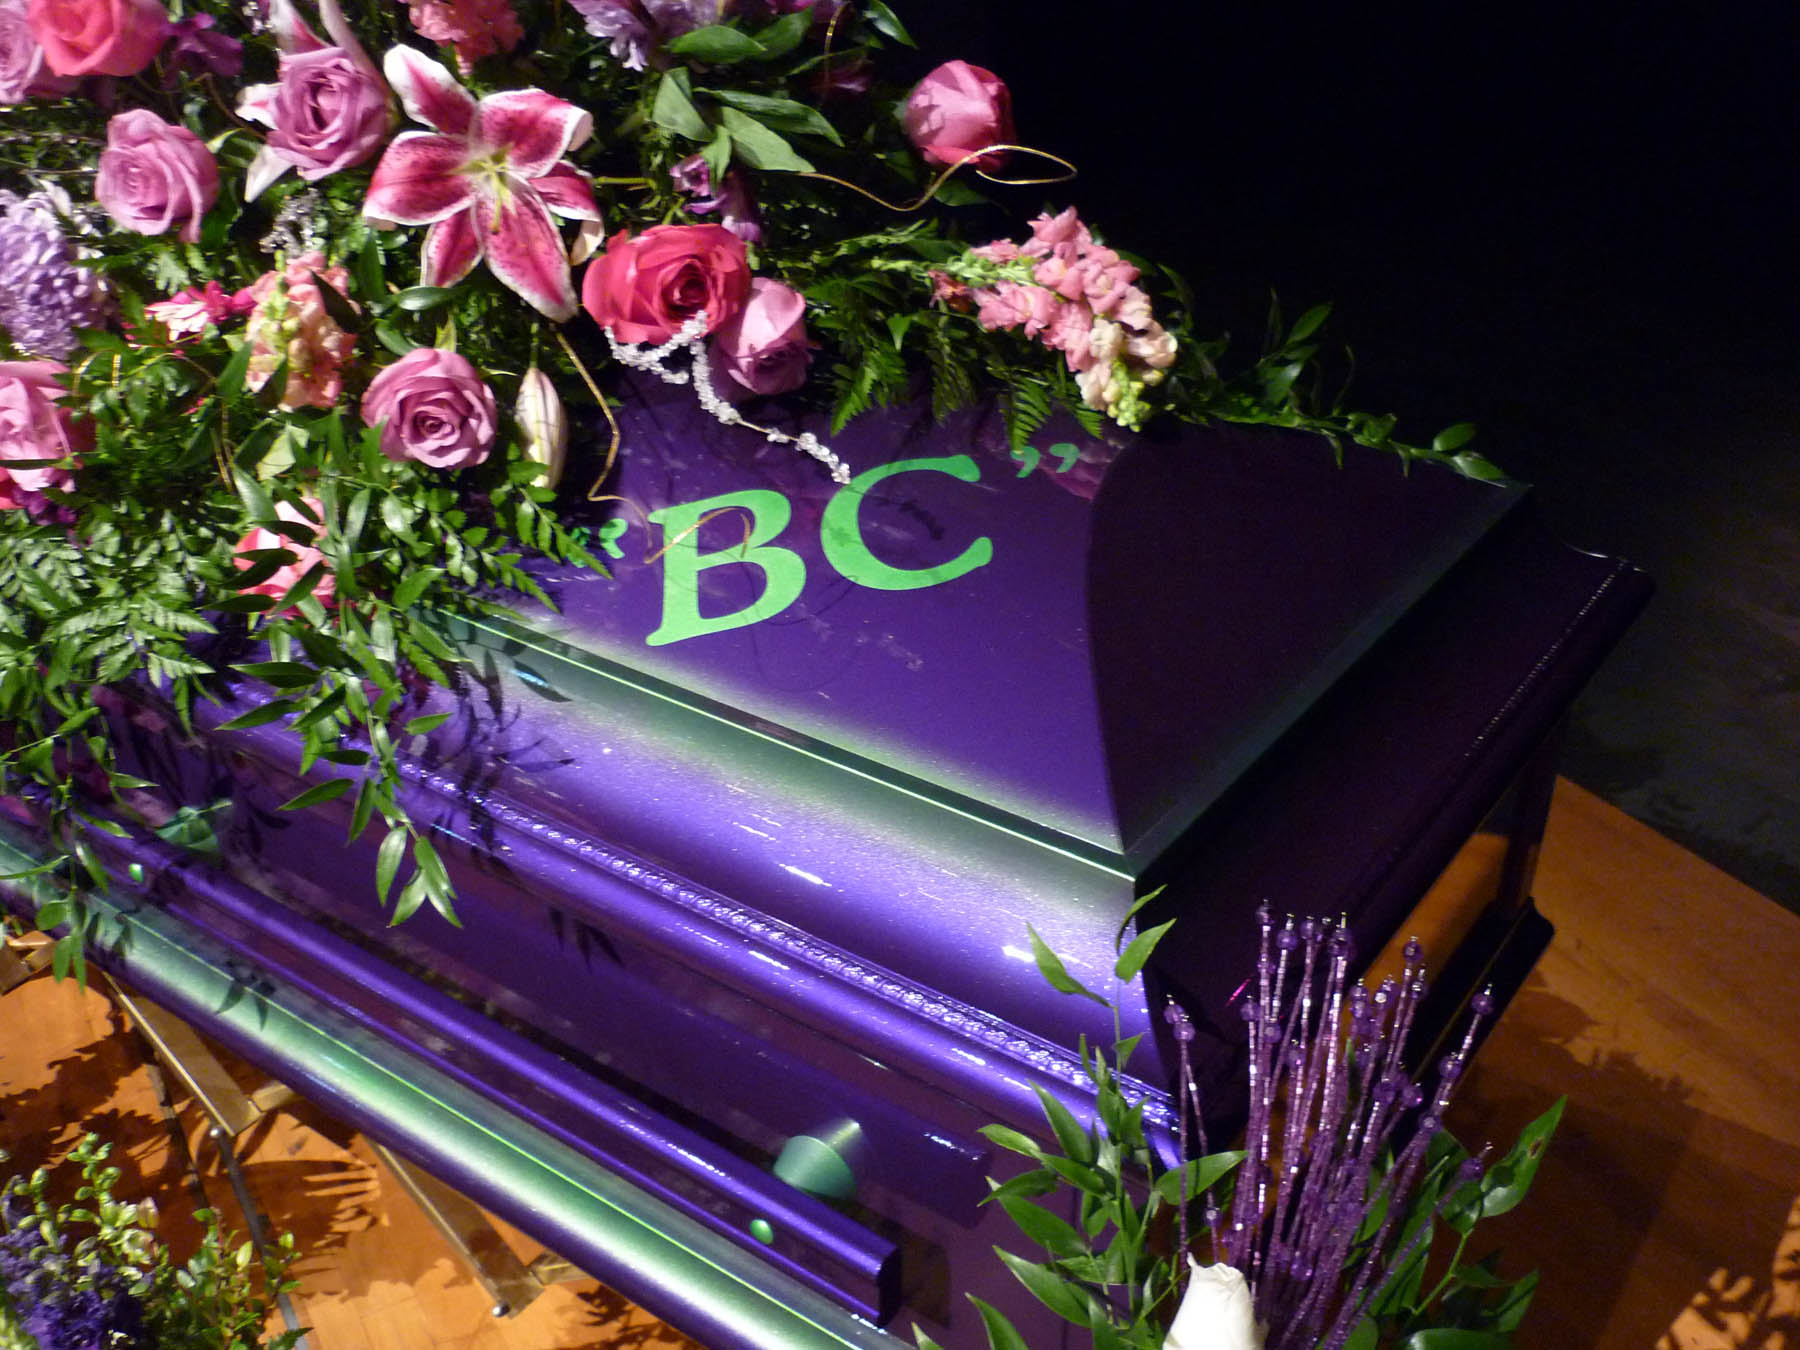 BC's Custom painted casket